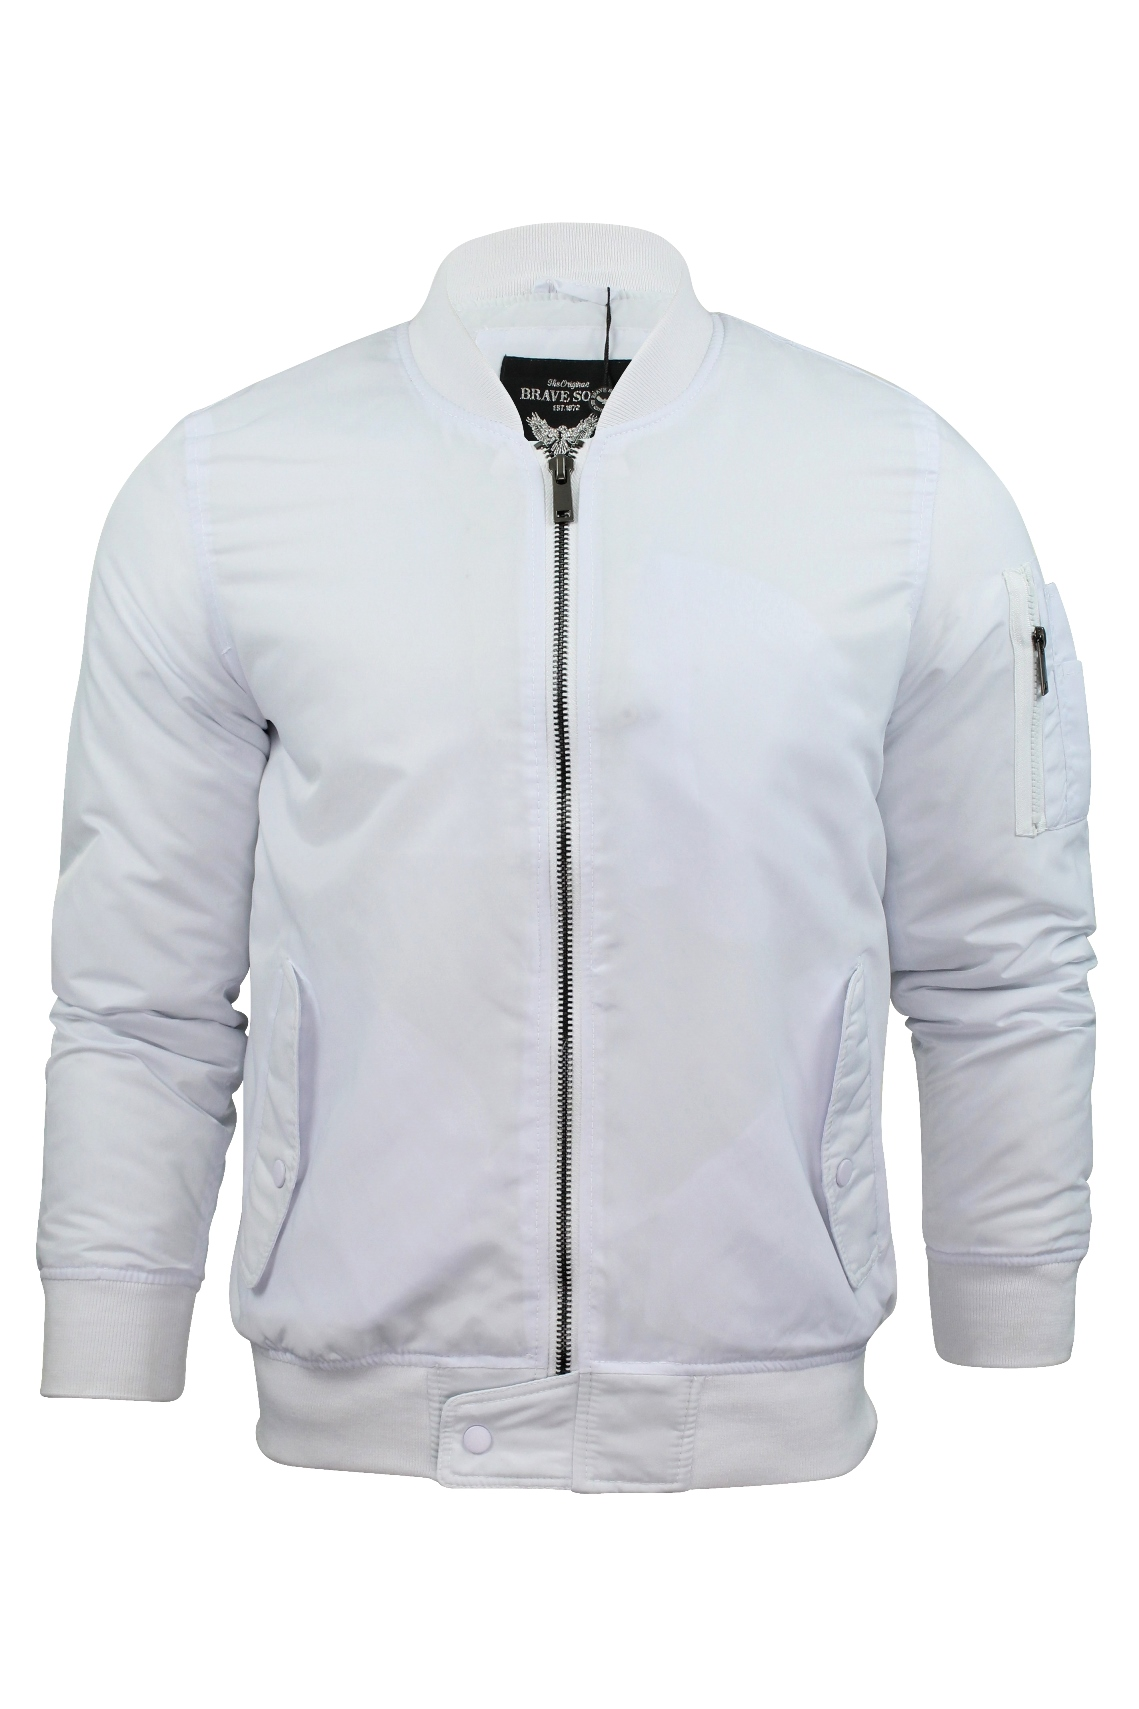 Shop Cockpit USA's men's flight jackets and military apparel today. Handcrafting timeless authentic aviation apparel with the finest materials since